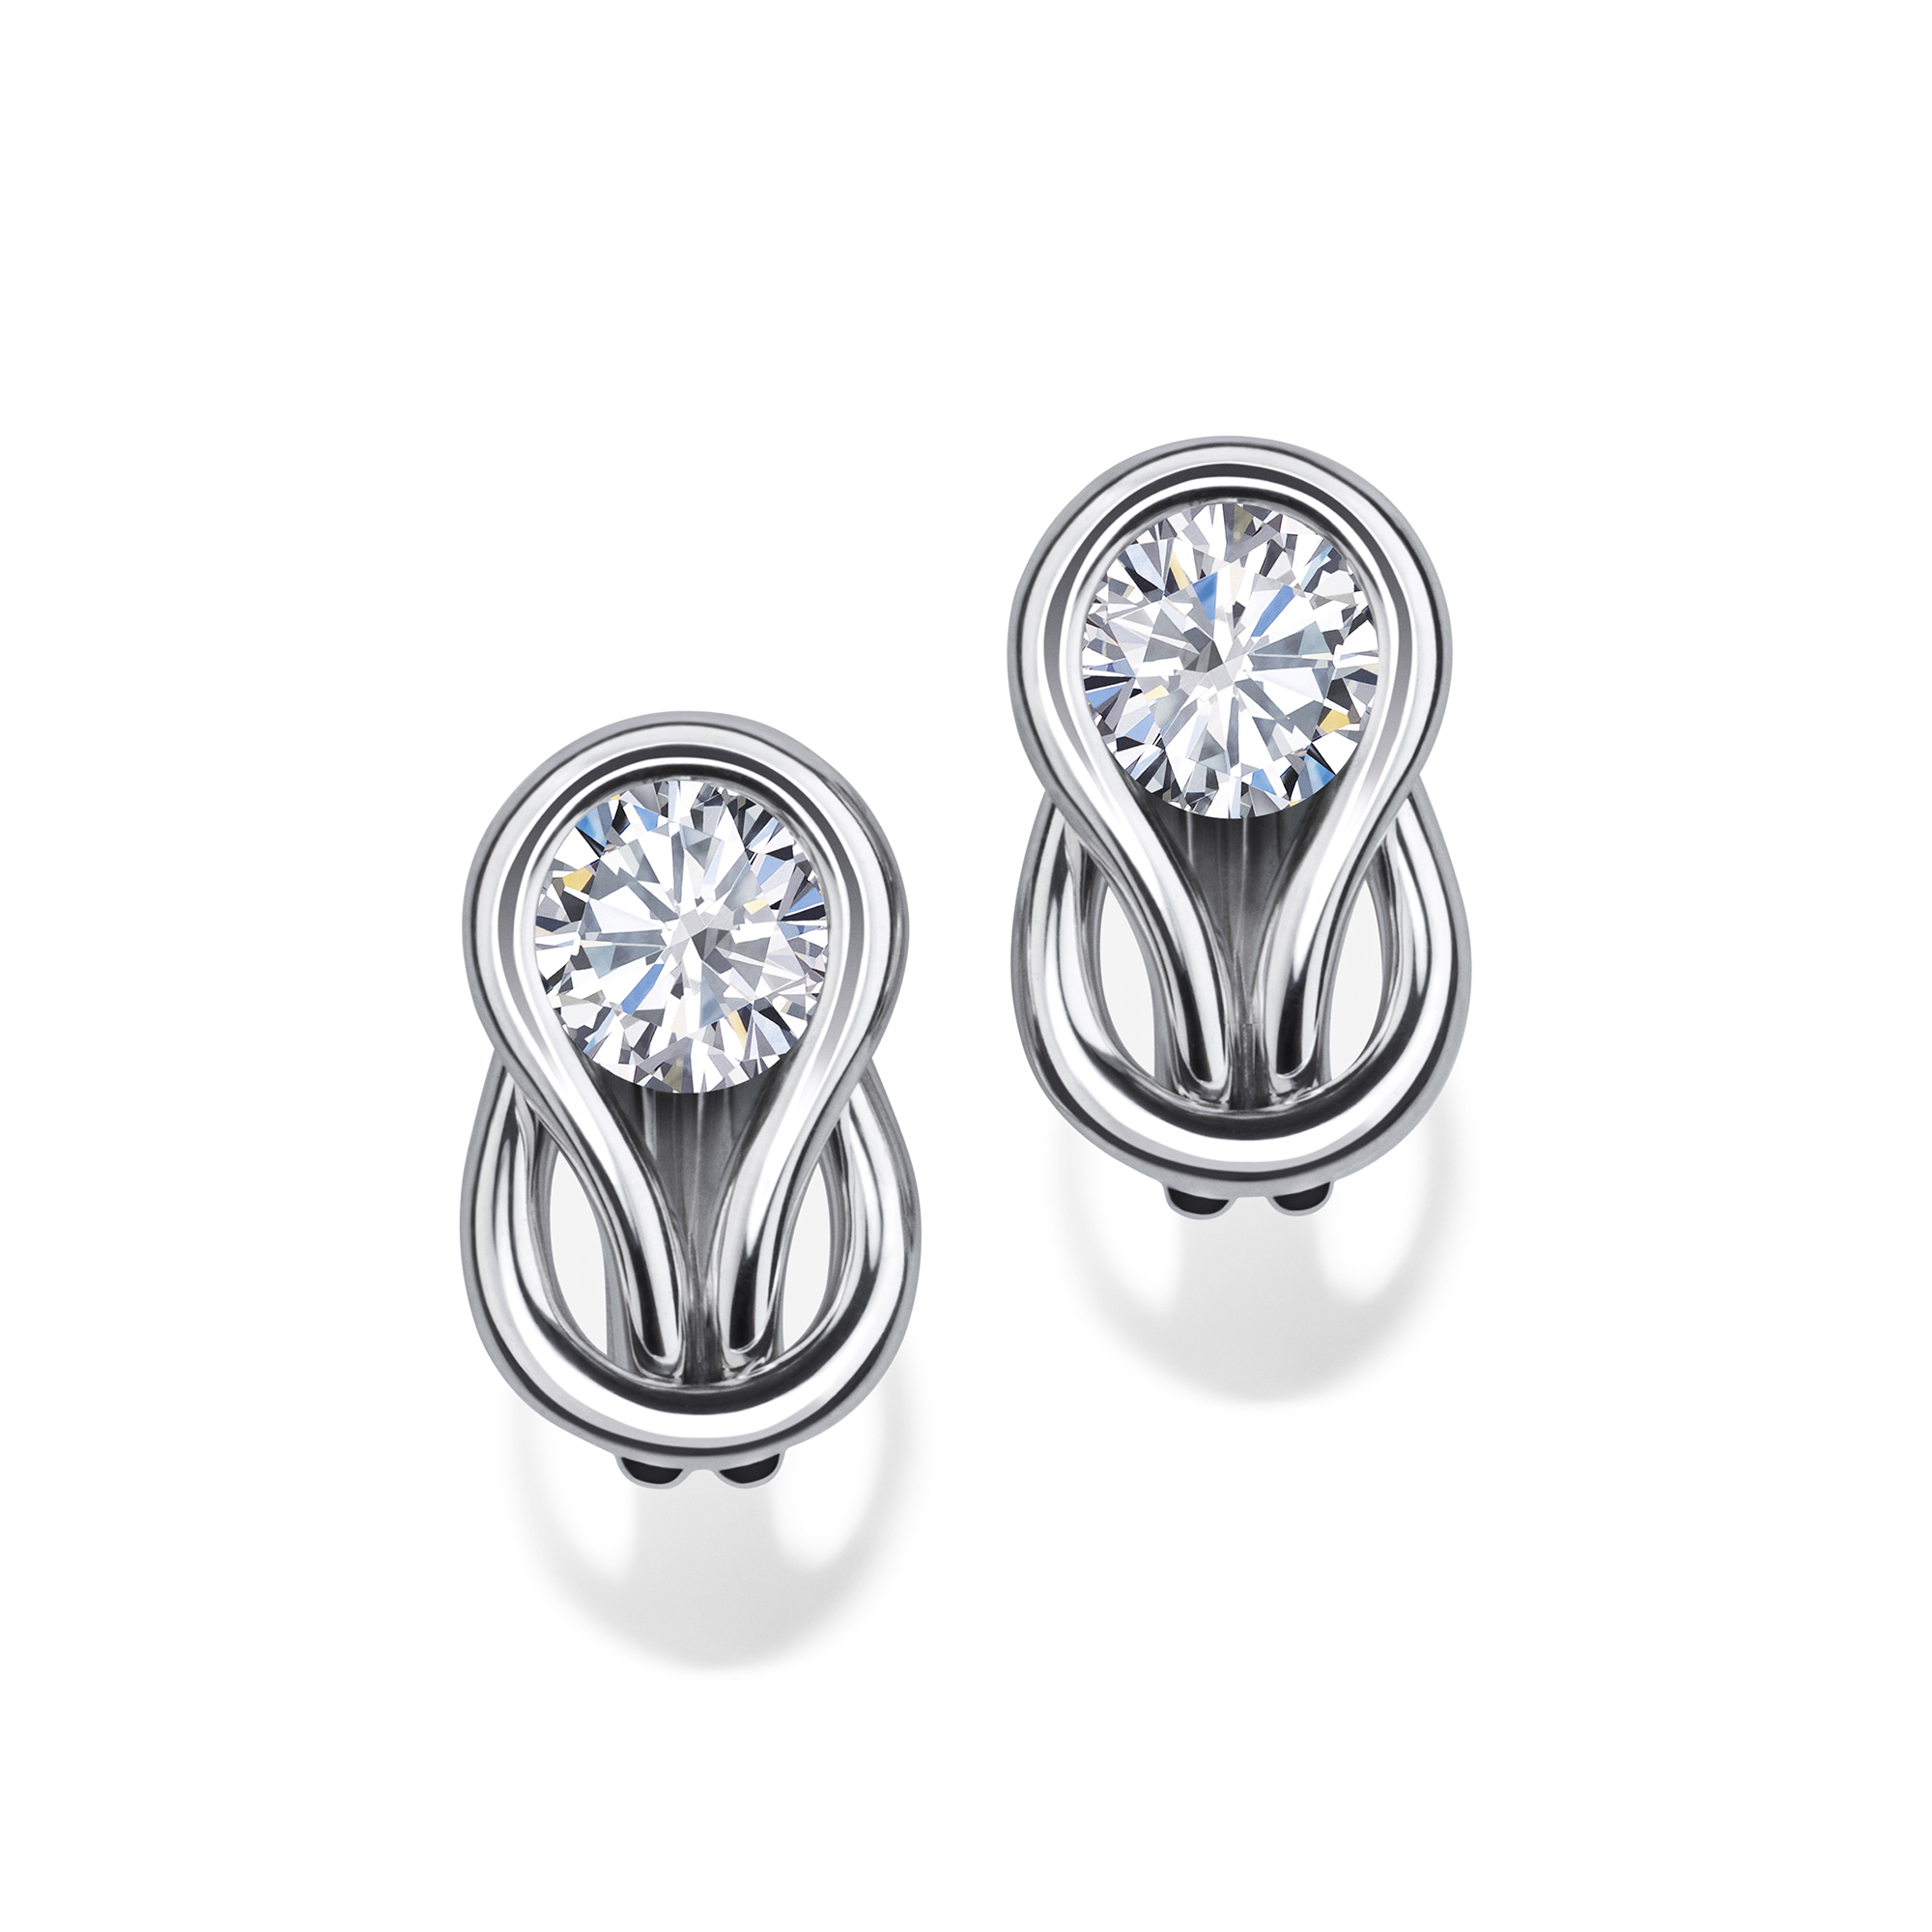 color earrings round a src cut prod dia yg jewelwesell diamond ladies net jewel metal p we solitaire s sell select stud